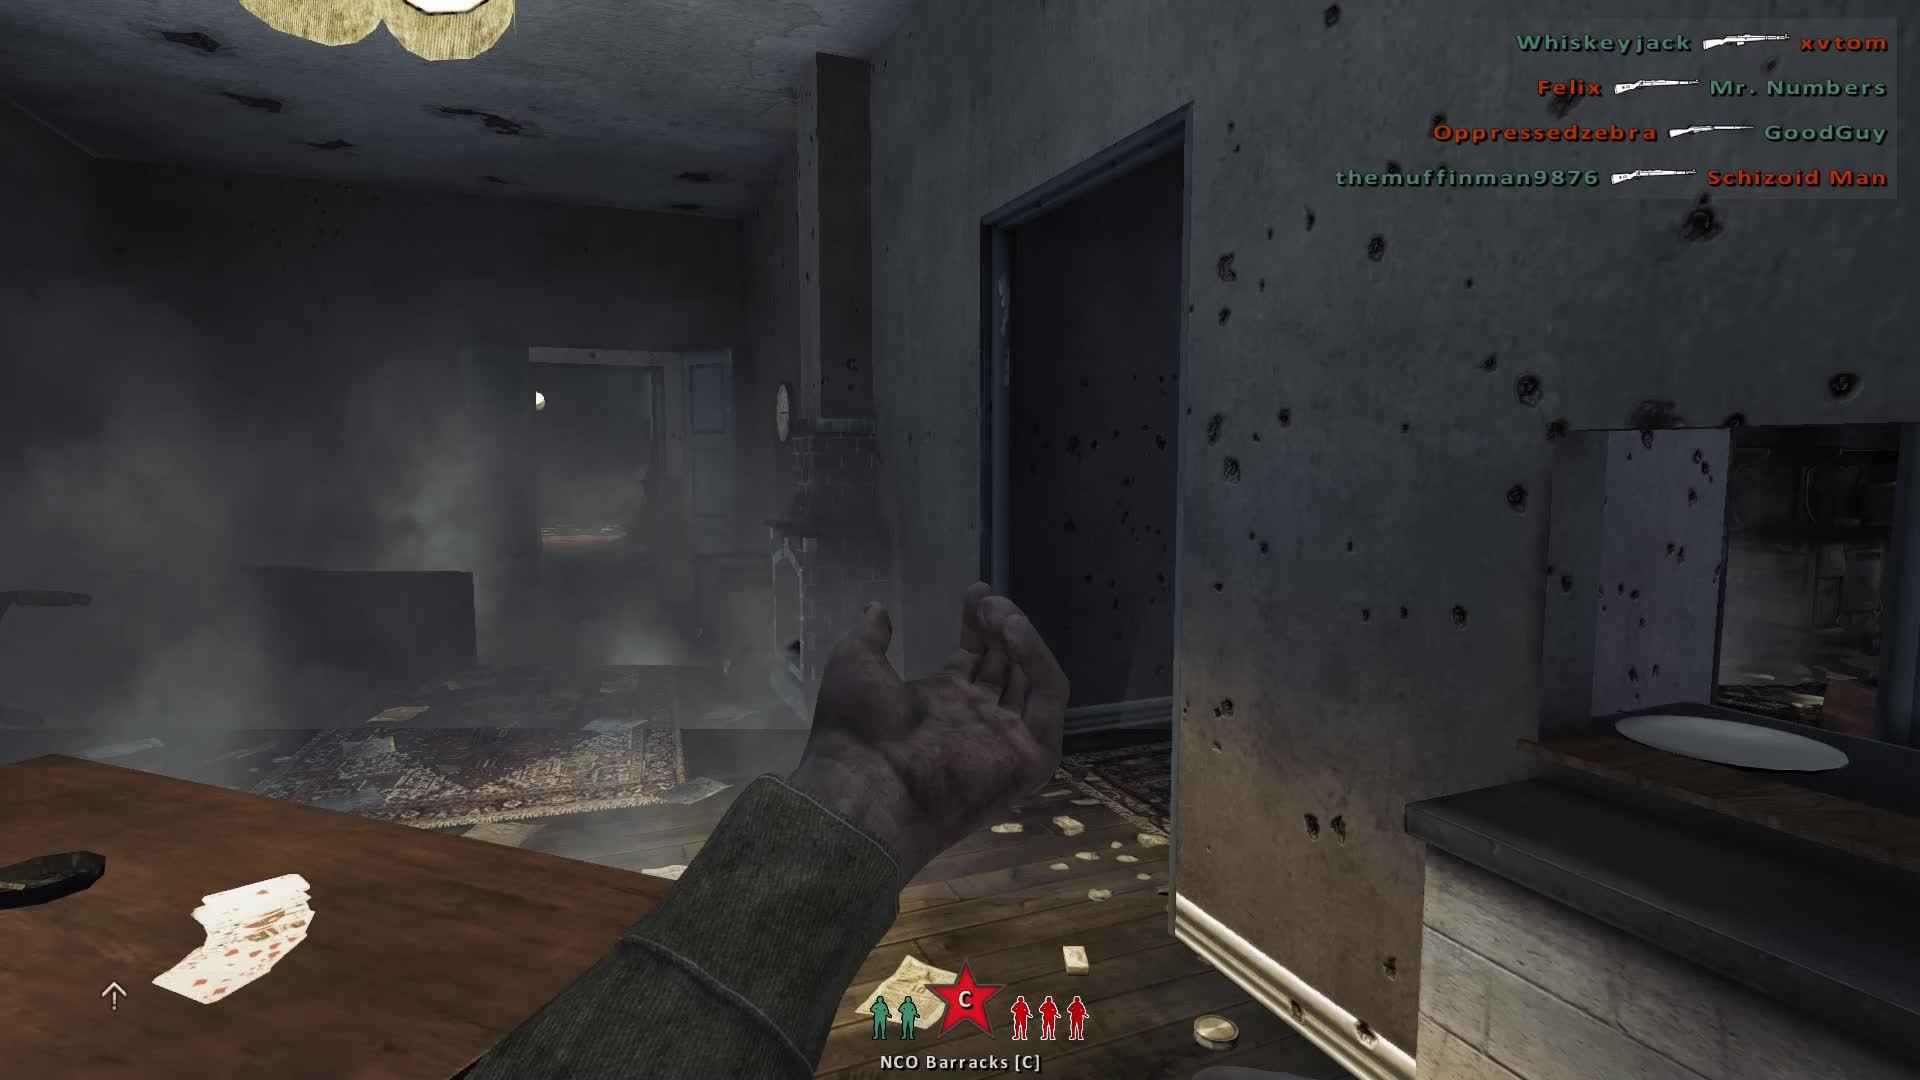 redorchestra, When You're Wondering Where Your Rifle Went GIFs